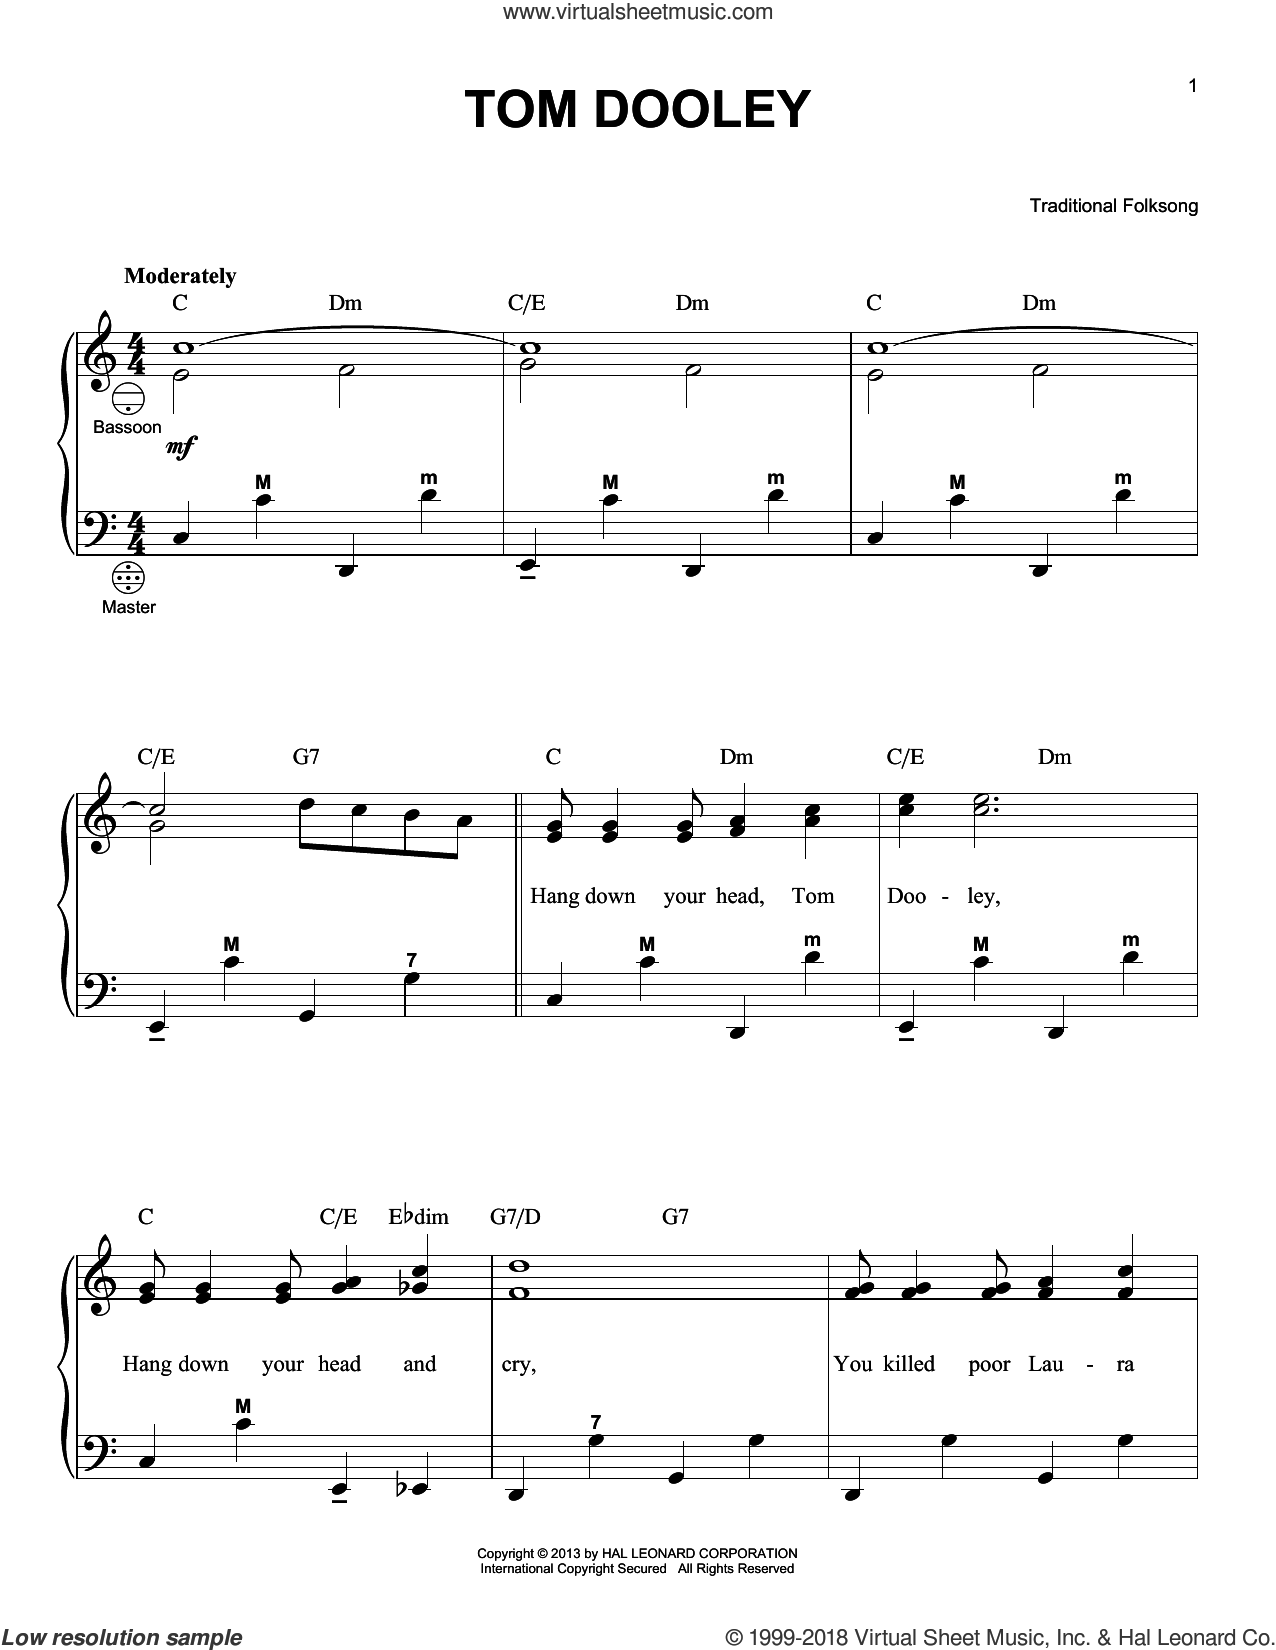 Tom Dooley sheet music for accordion by Gary Meisner